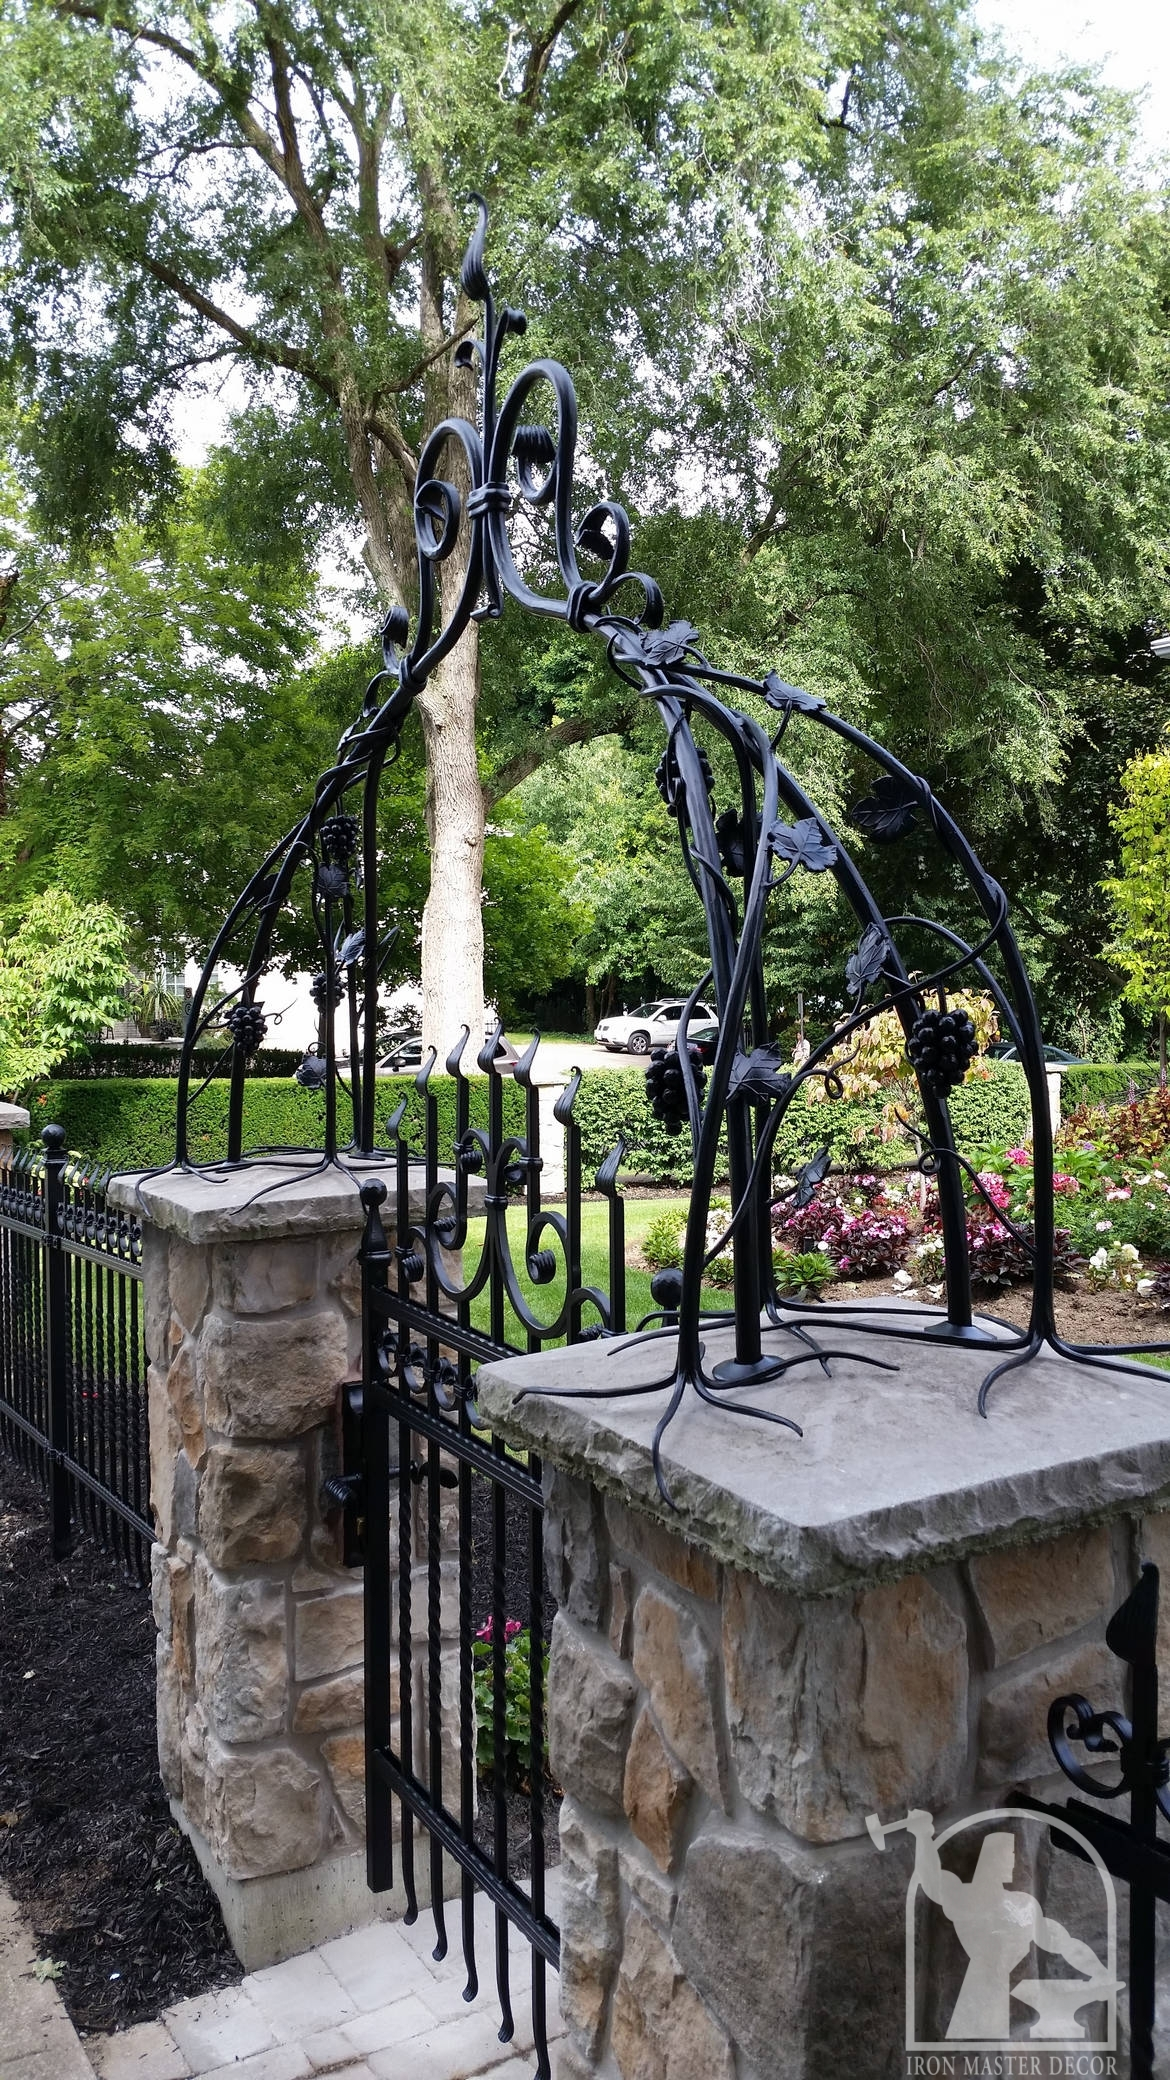 Wrought Iron Miscellaneous Photo Gallery | Iron Master